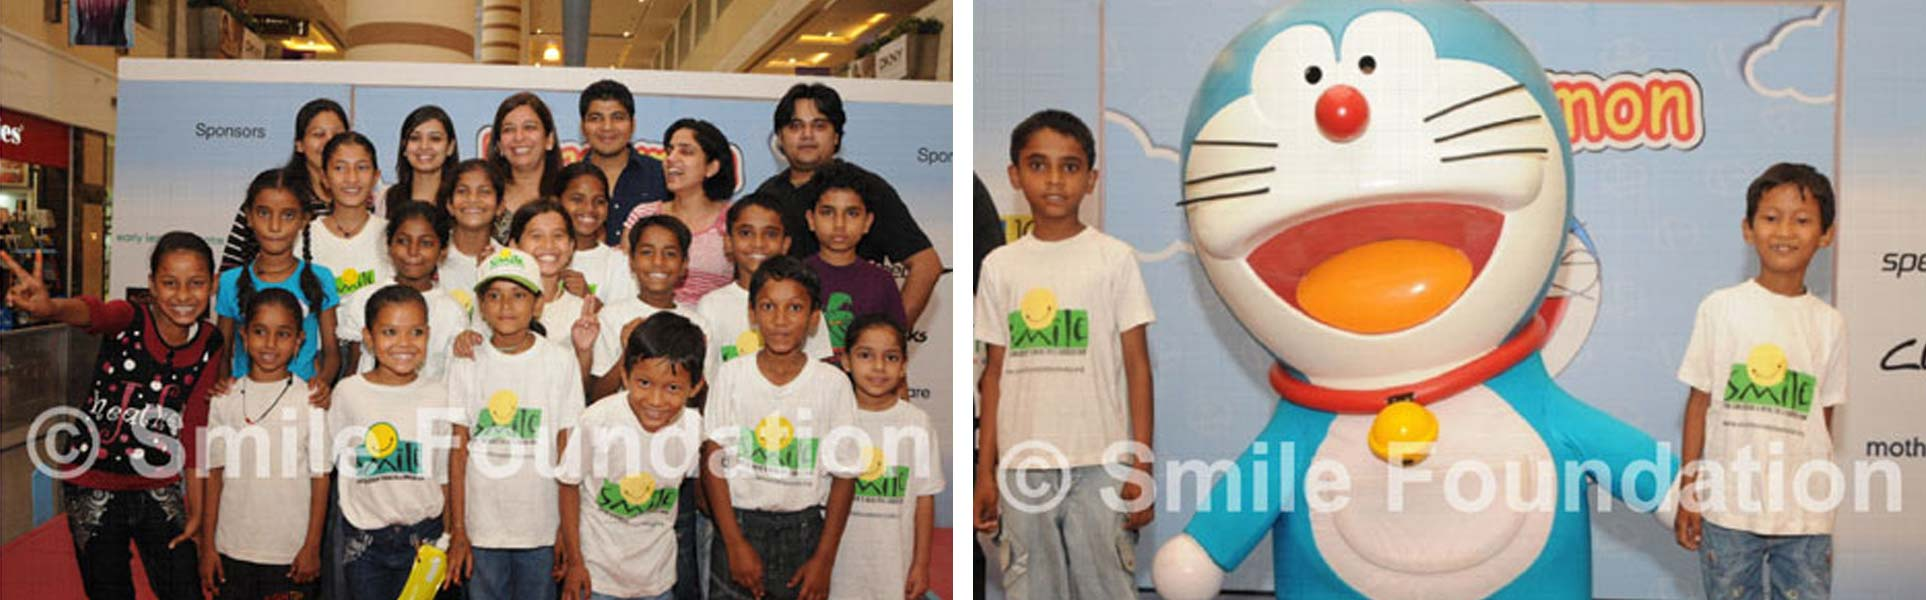 Smile Foundation kids enjoy with Doraemon at DLF Place Saket